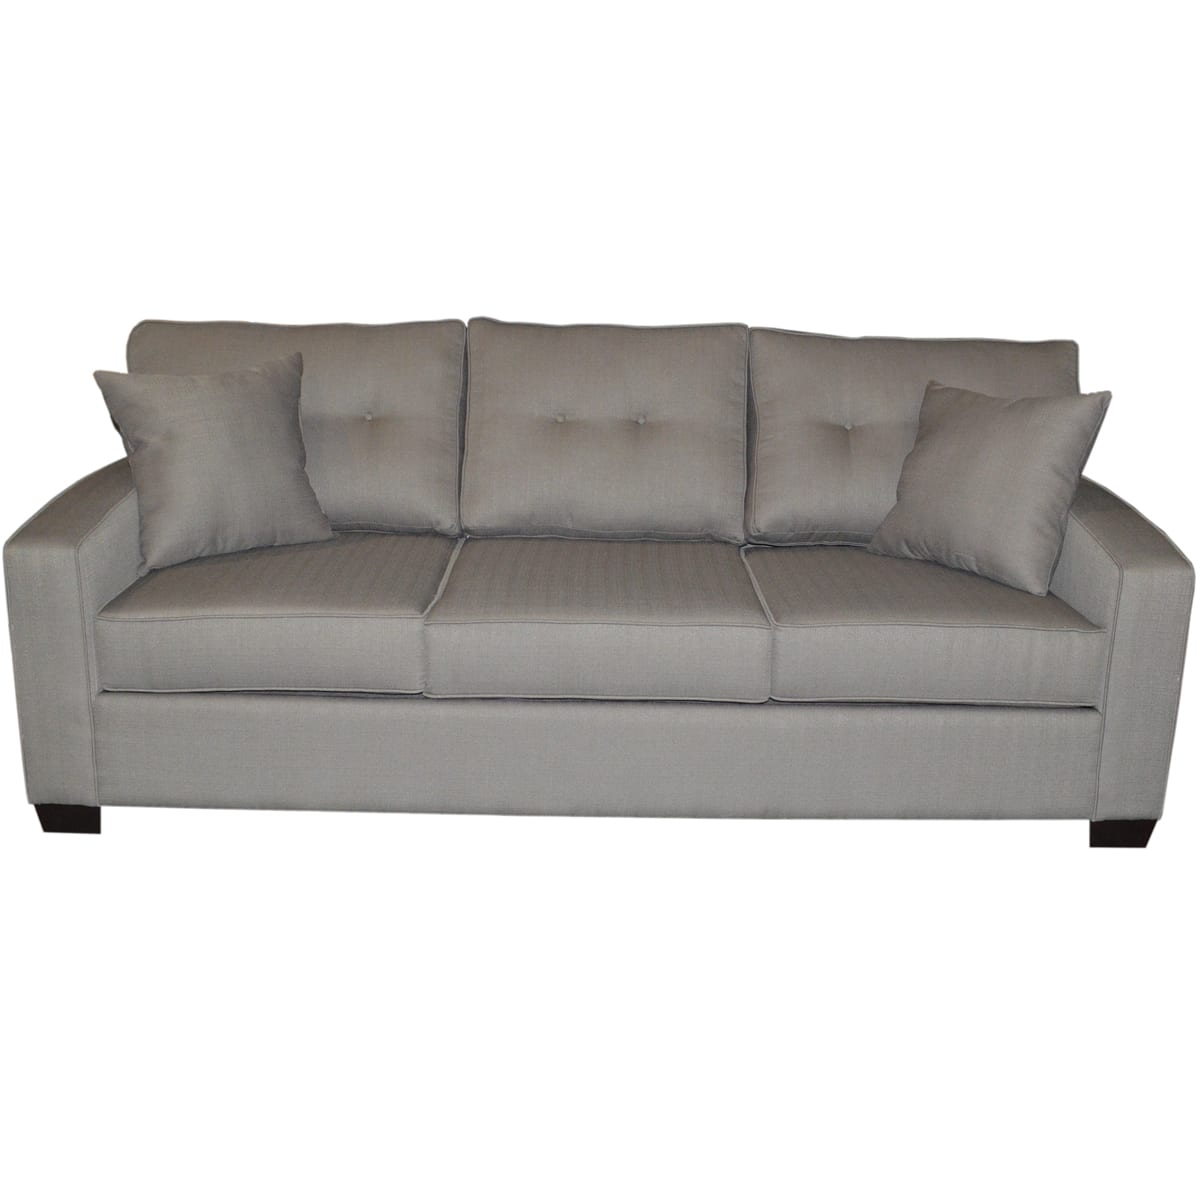 2064 Model Custom Made Sectional Sofa Condo Love